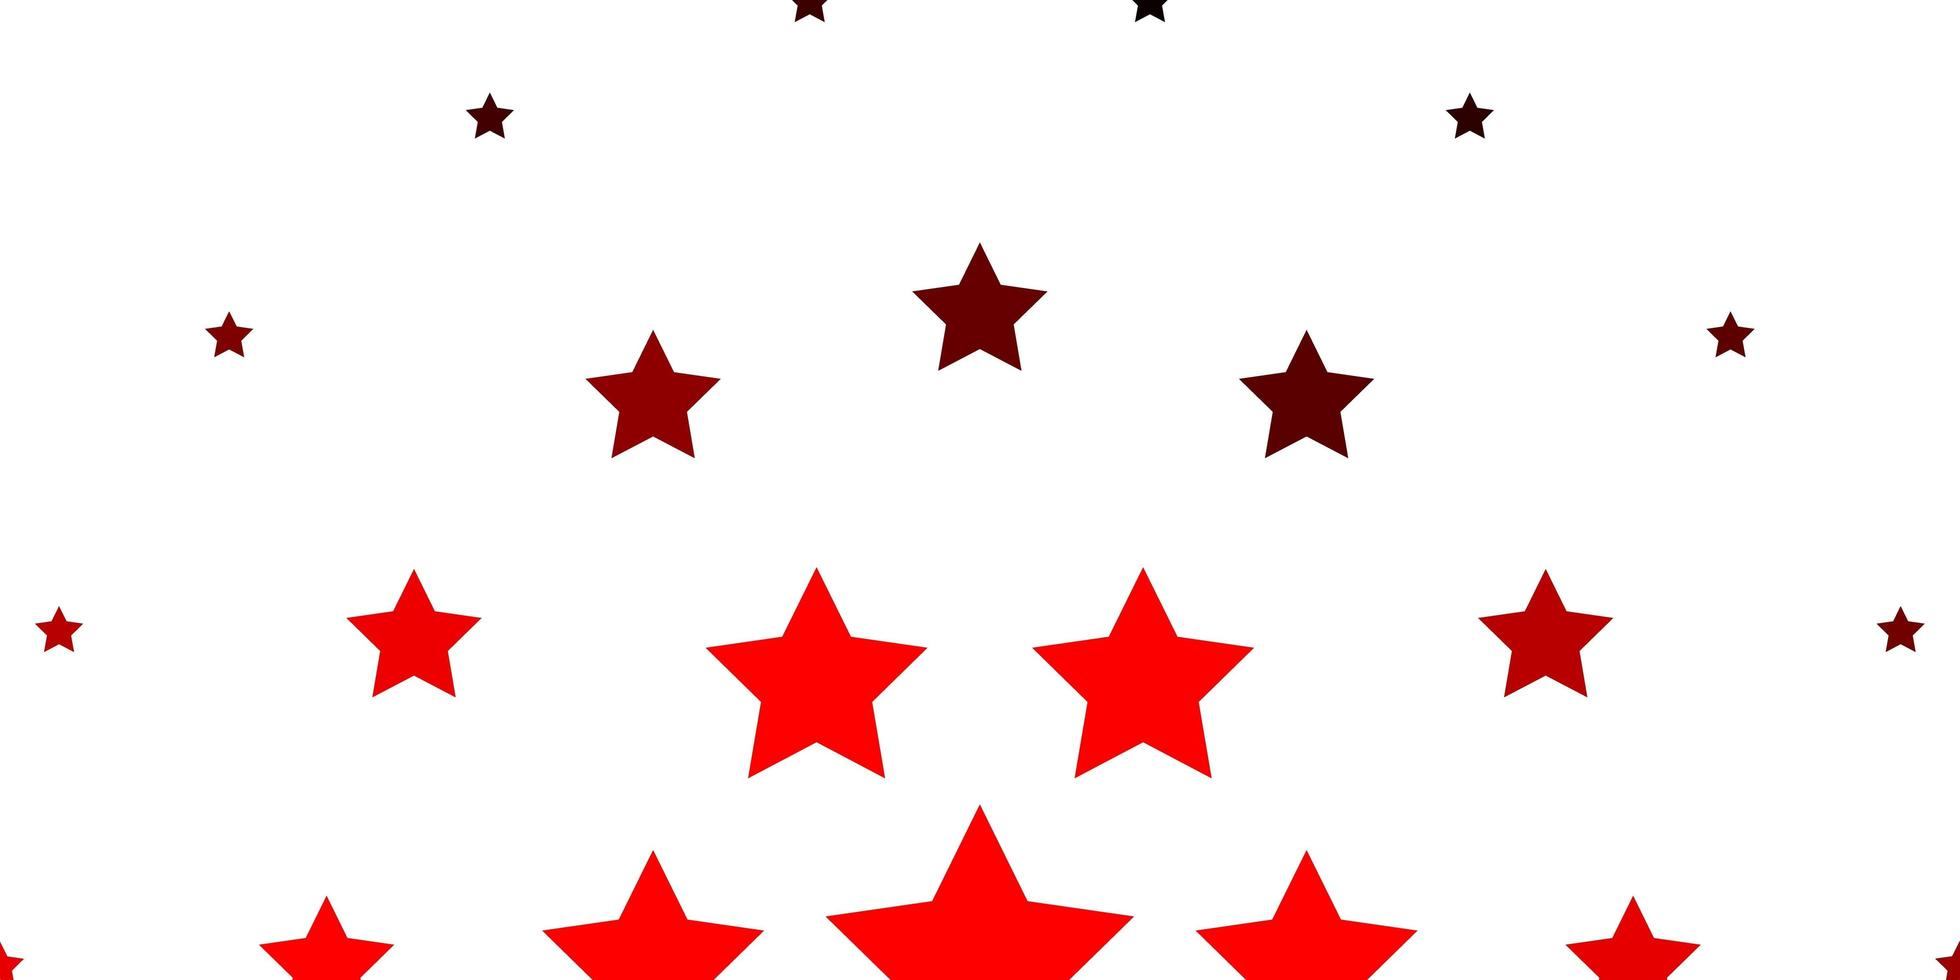 Light Red vector background with colorful stars.